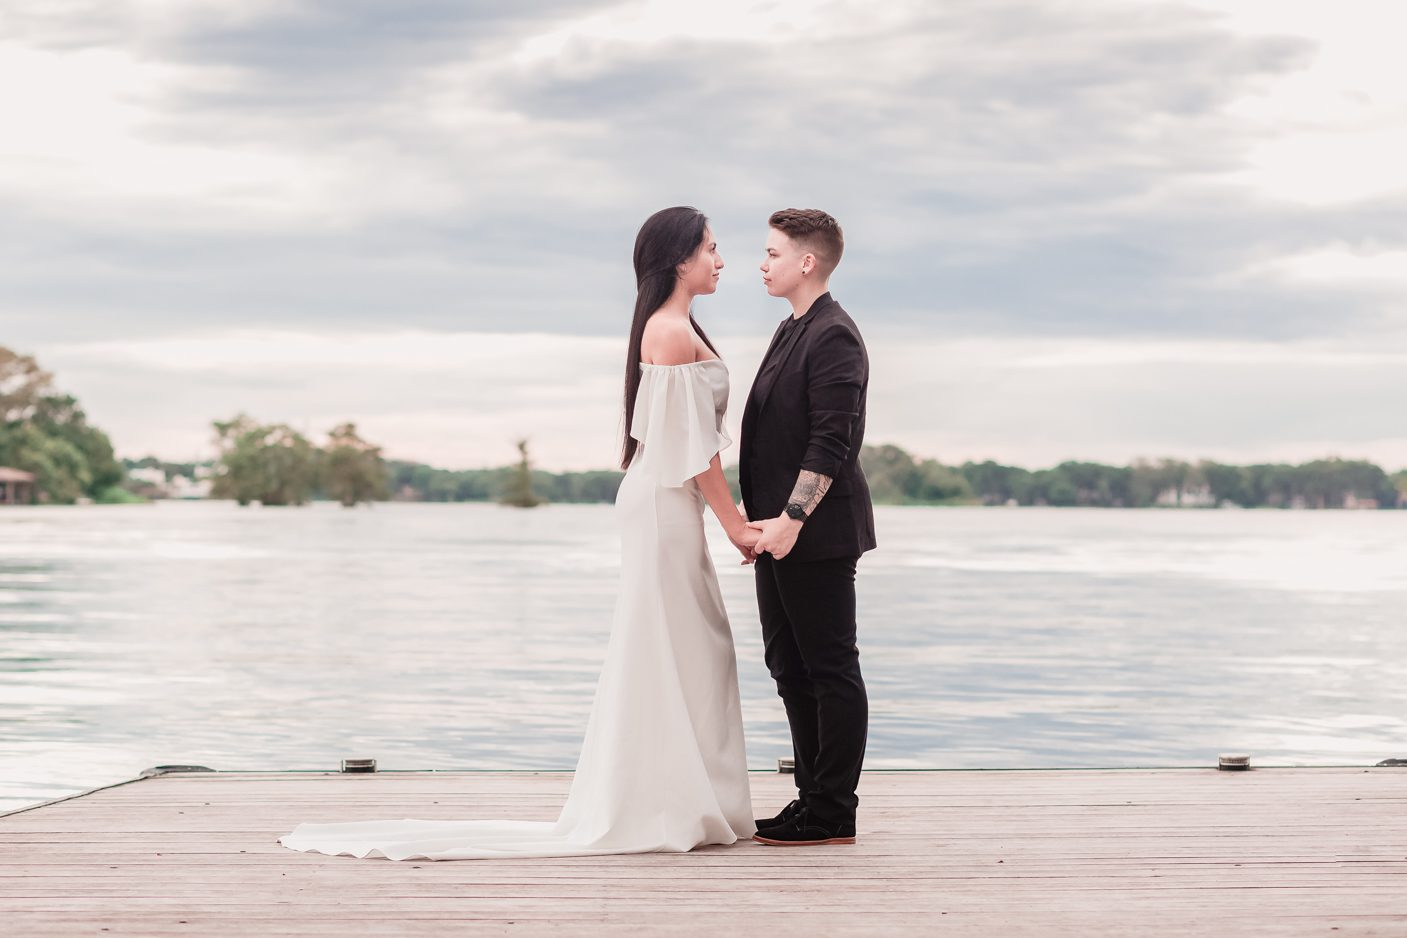 Two brides on their wedding day in Orlando park at sunset captured by top photographer